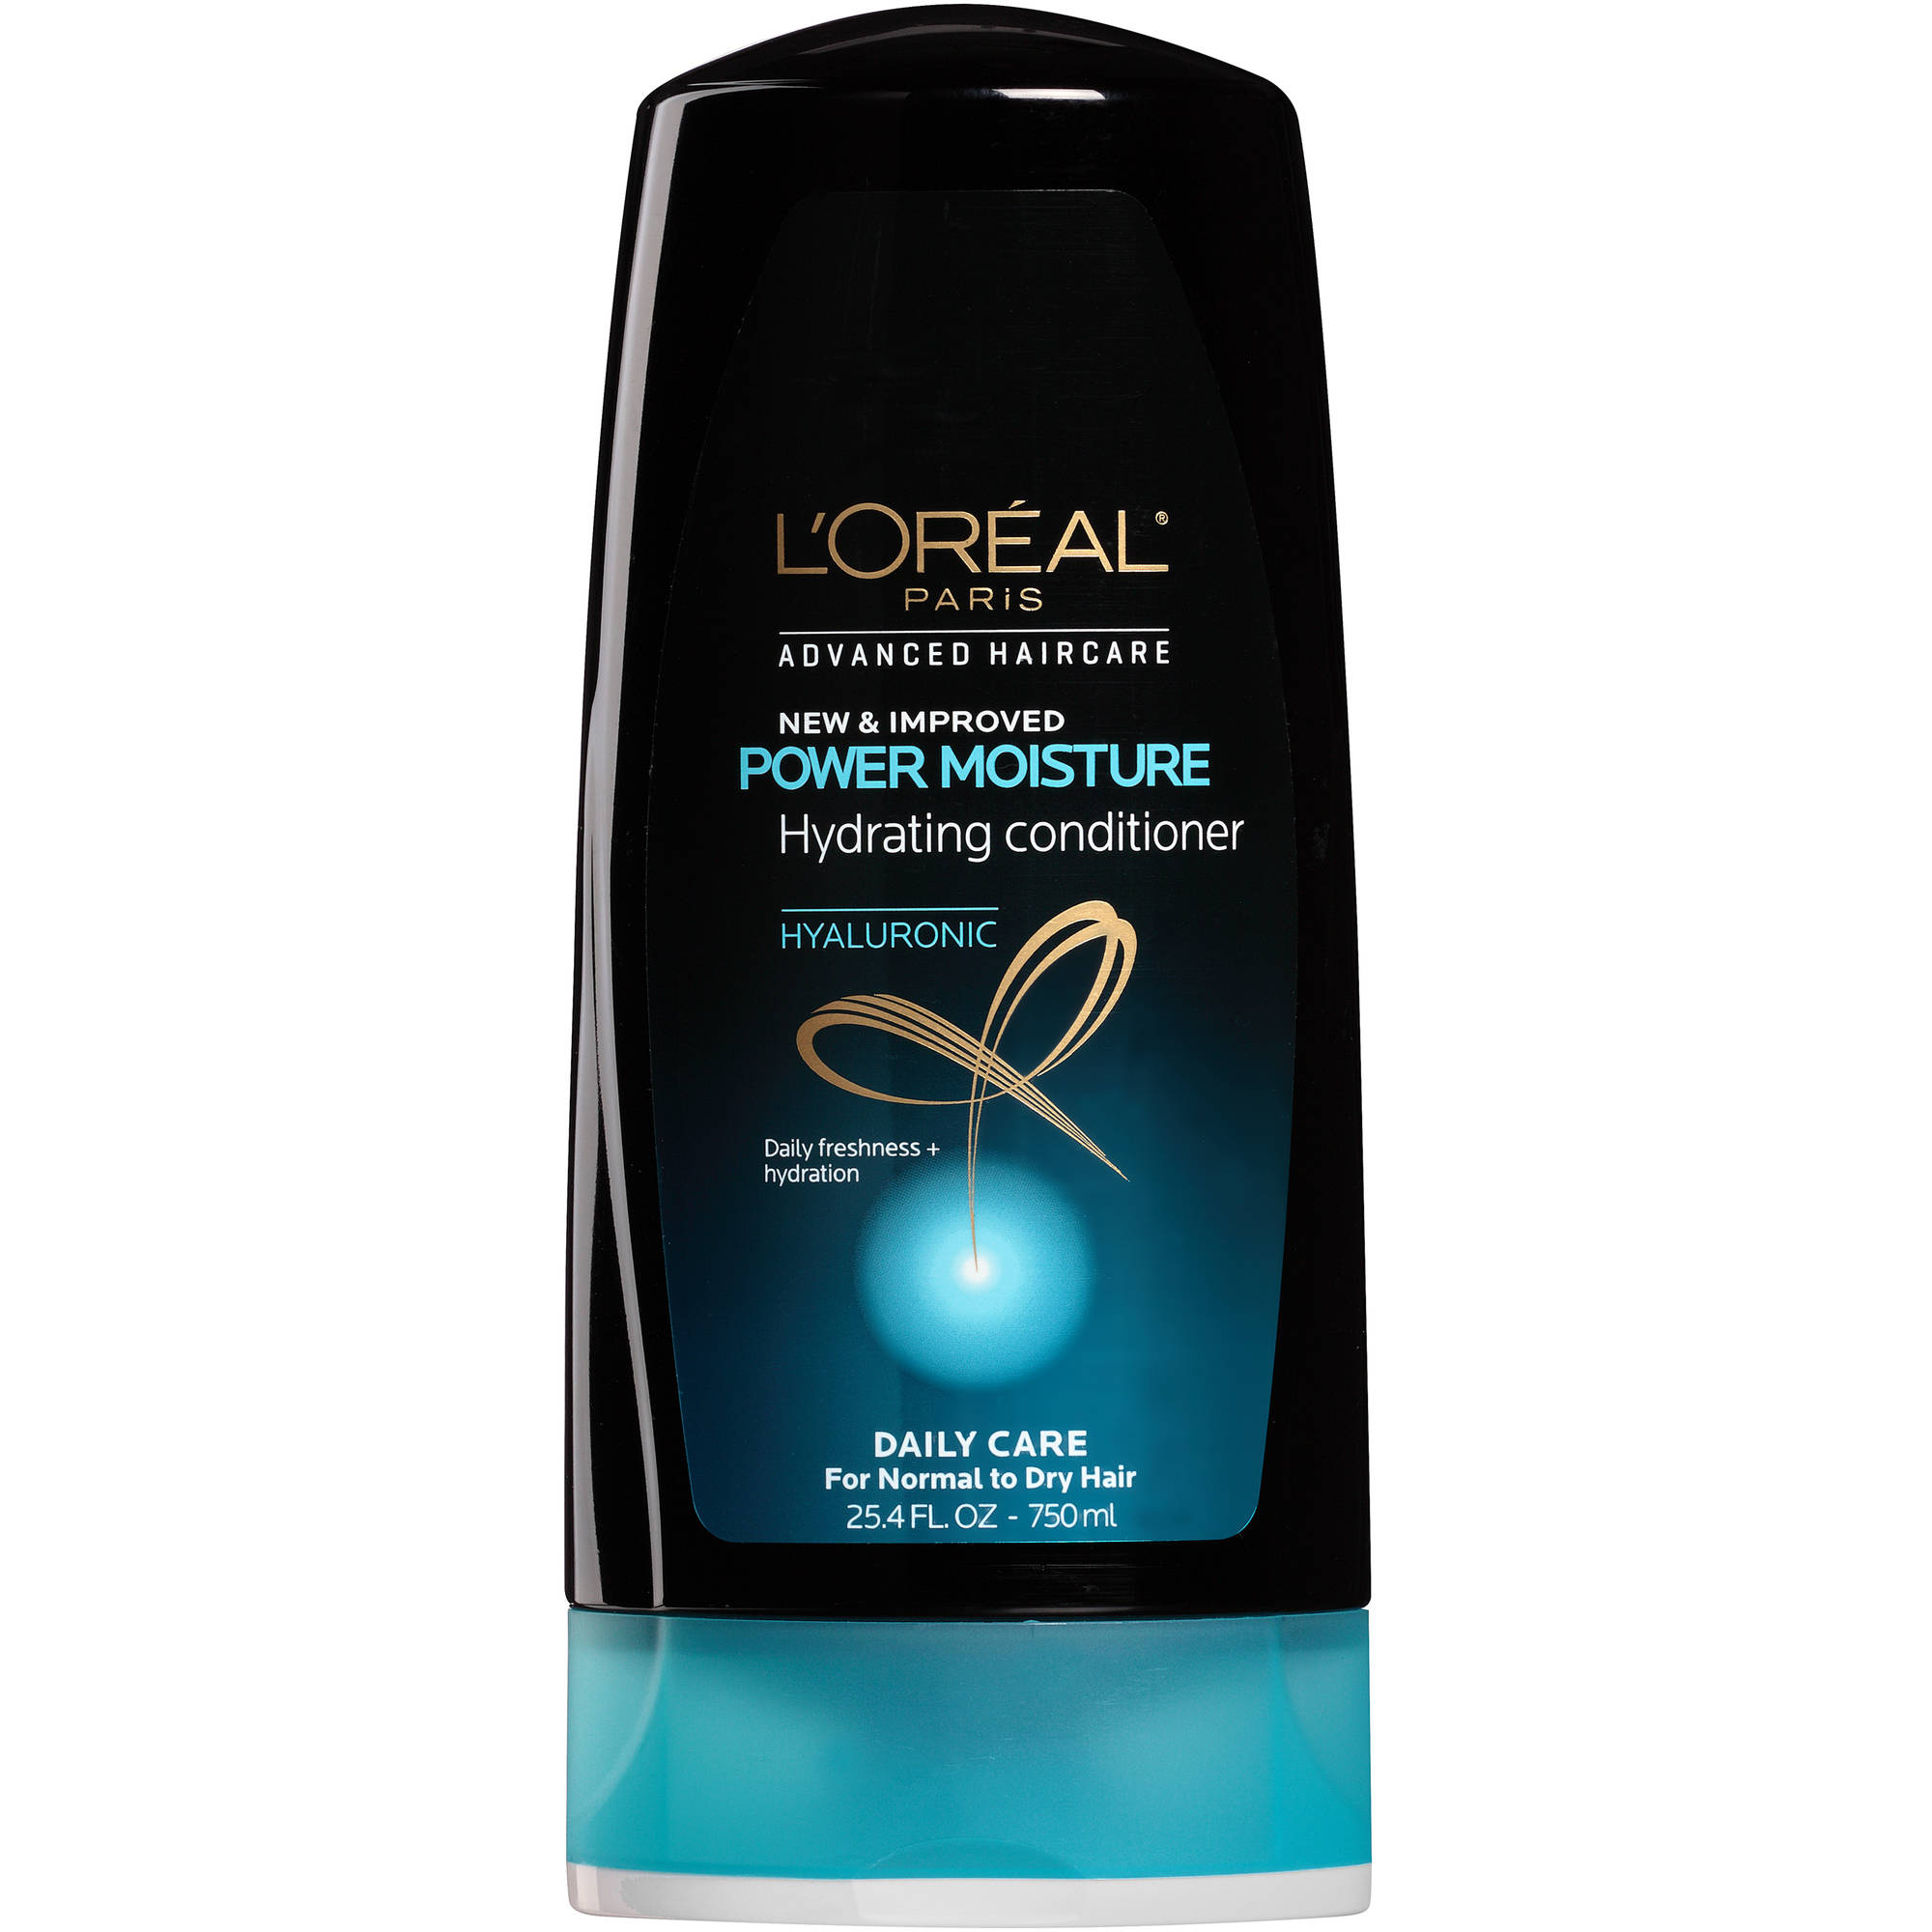 L'Oreal Paris Advanced Haircare Power Moisture Conditioner 25.4 FL OZ